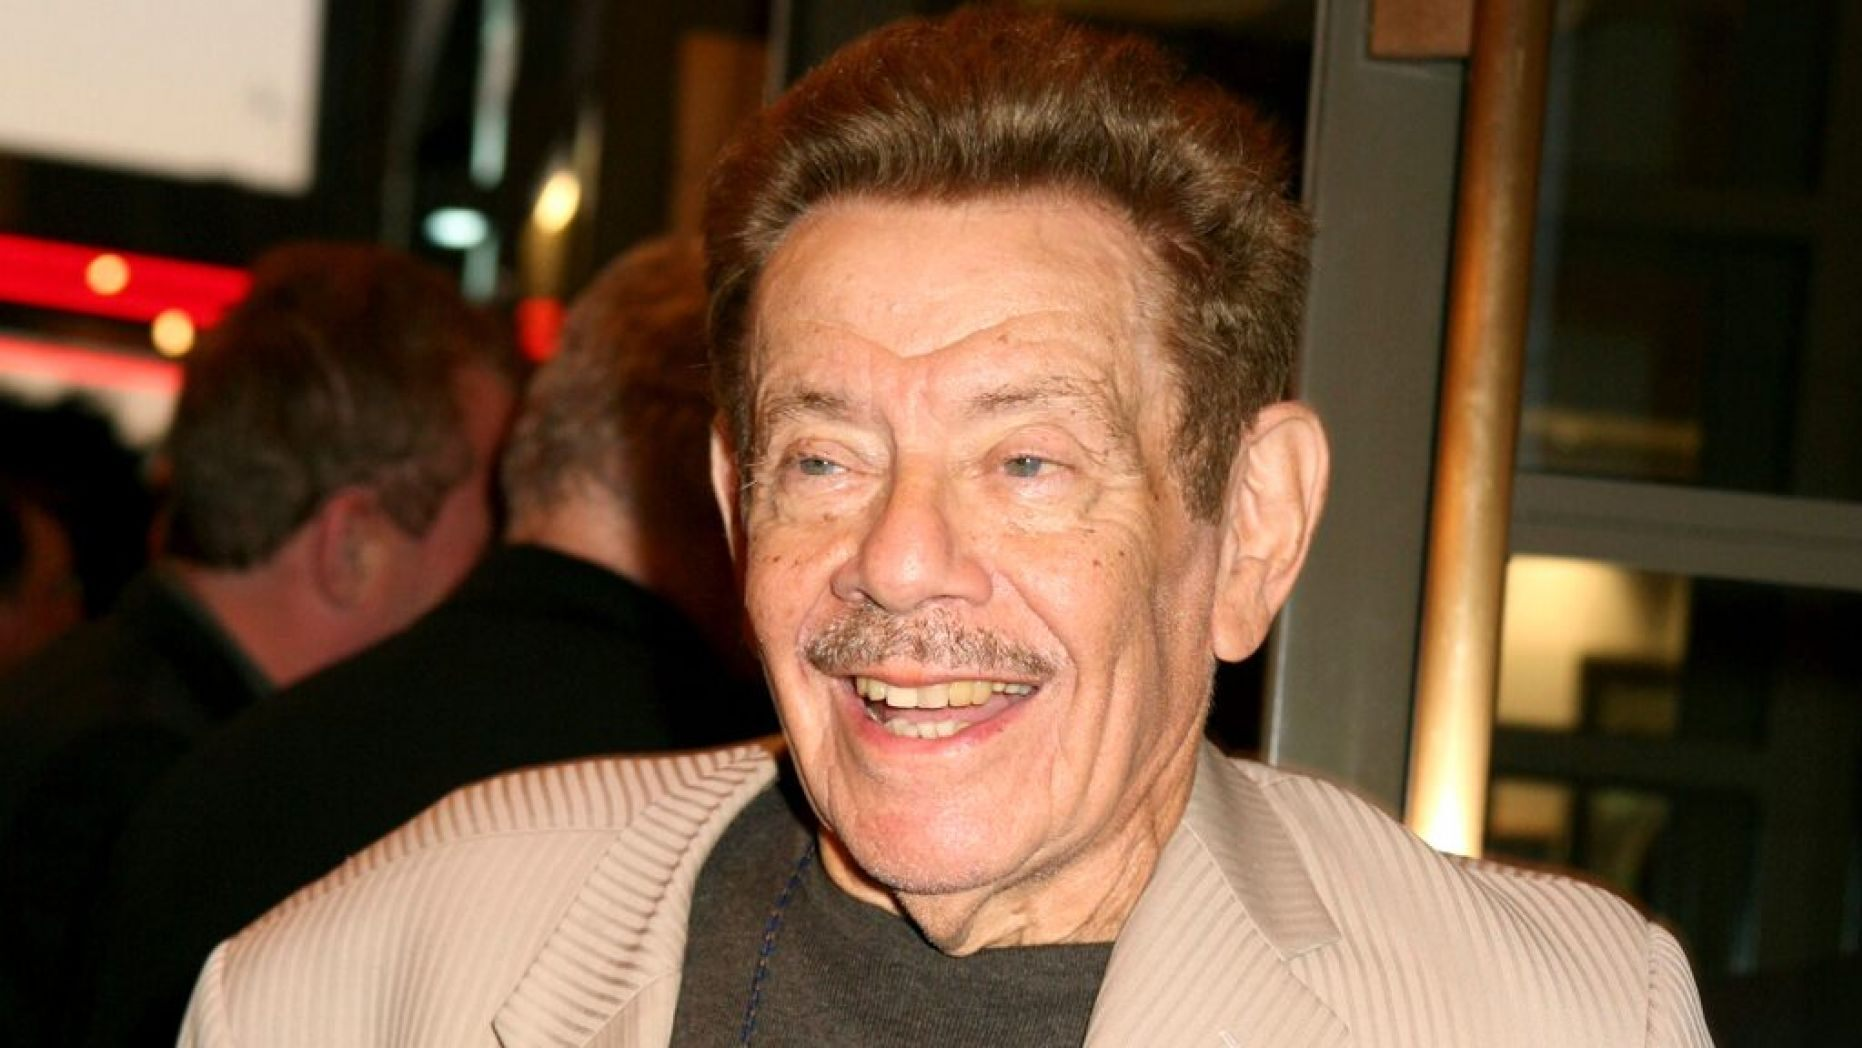 Jerry Stiller's 'Seinfeld' and 'King of Queens' co-stars paid tribute to the late actor.